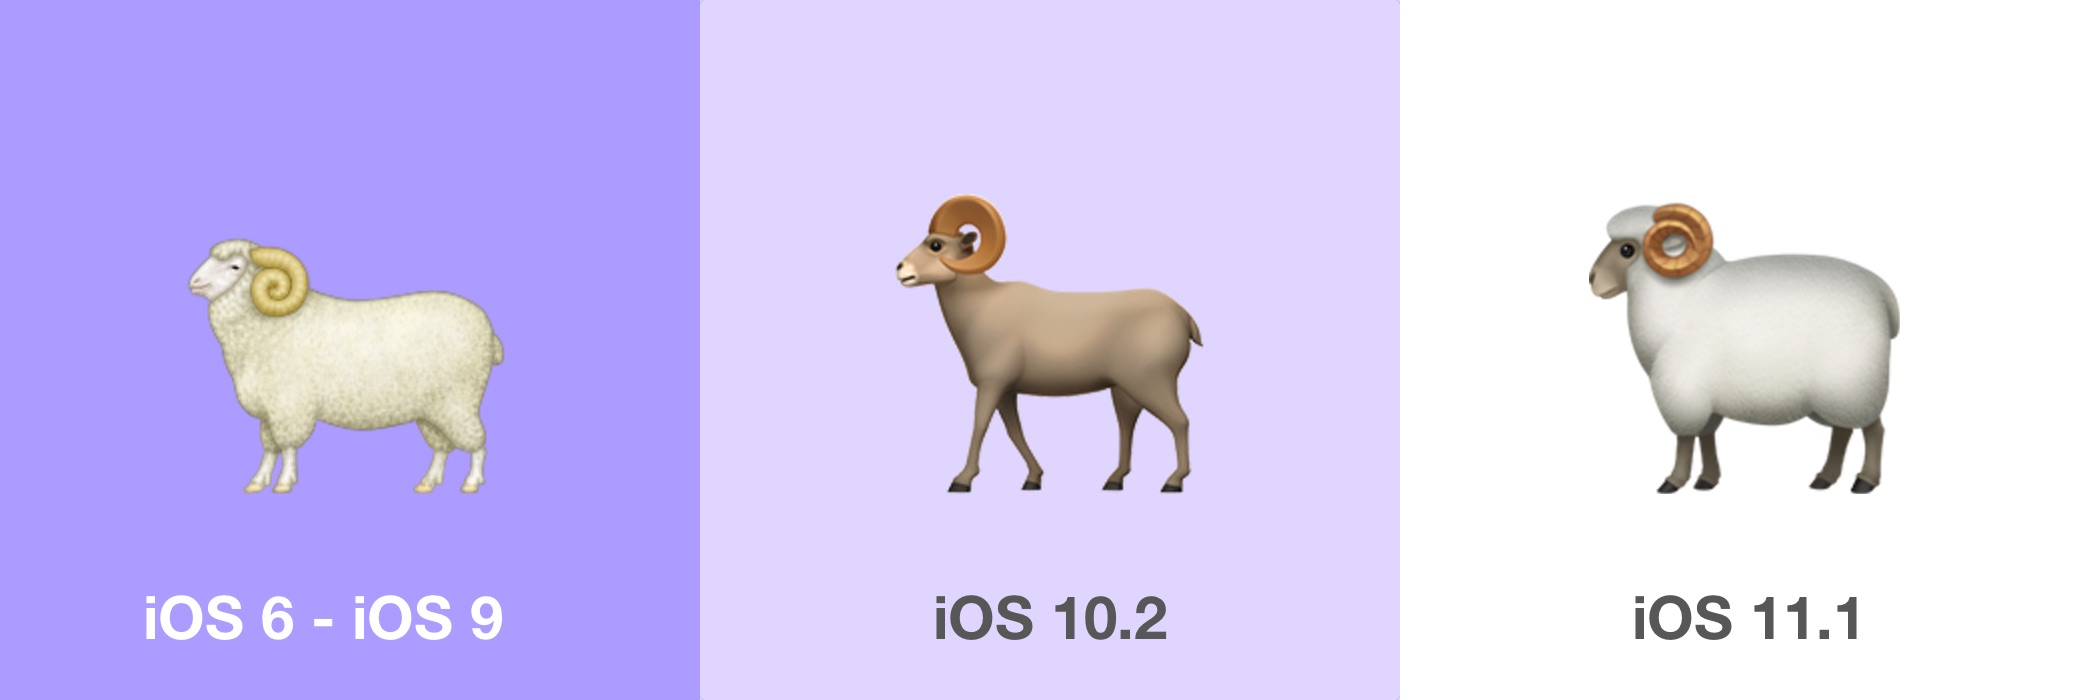 iOS 11 1 Emoji Changelog